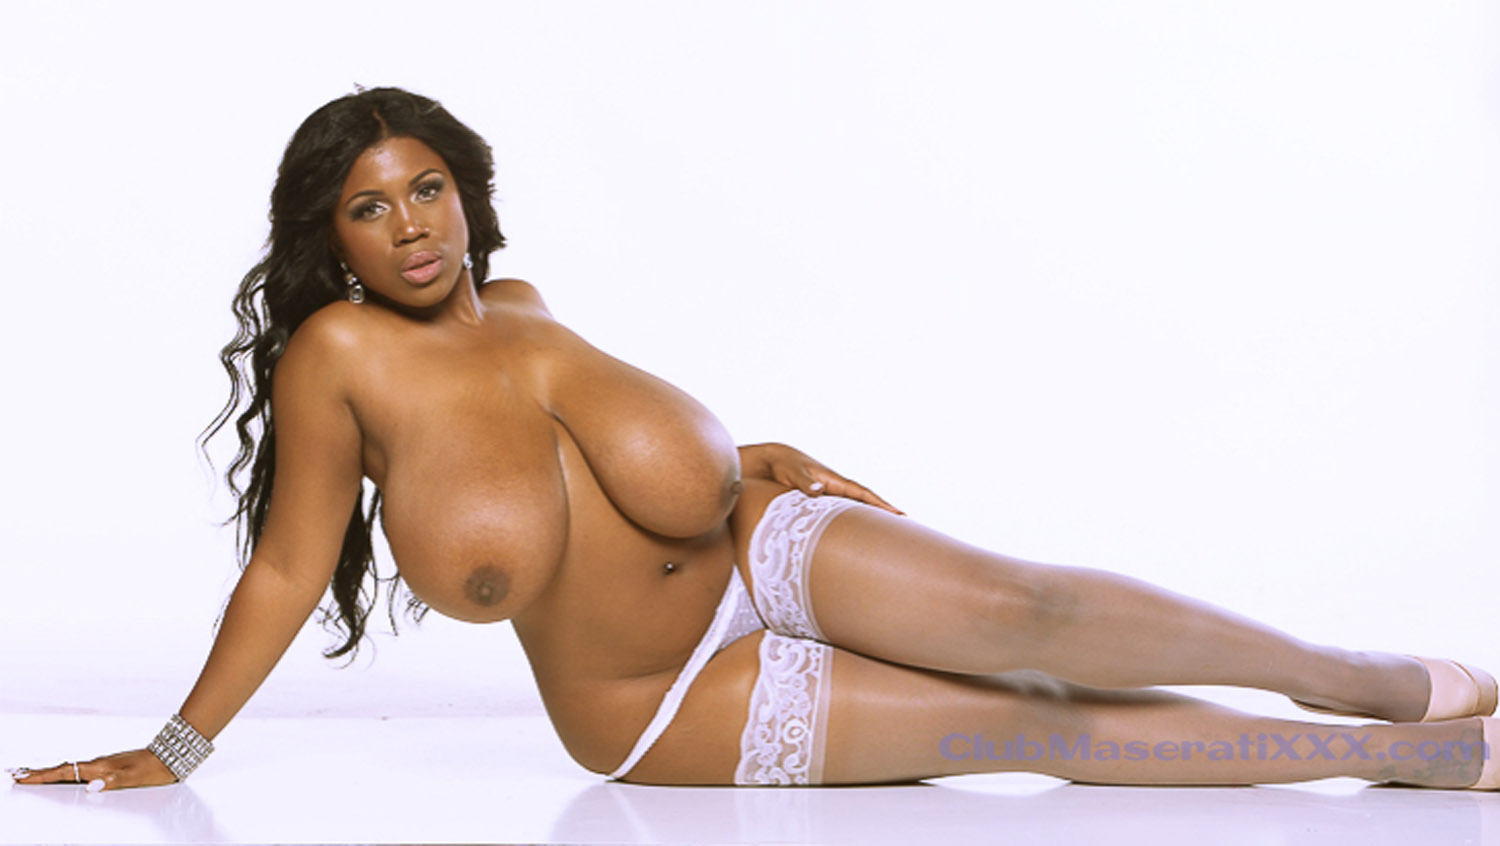 Super Hot Big Tits Ebony Babe Get Her Wet Bikini Pussy Fucked Hard And Creamed All Over Her Face By Big Naturals